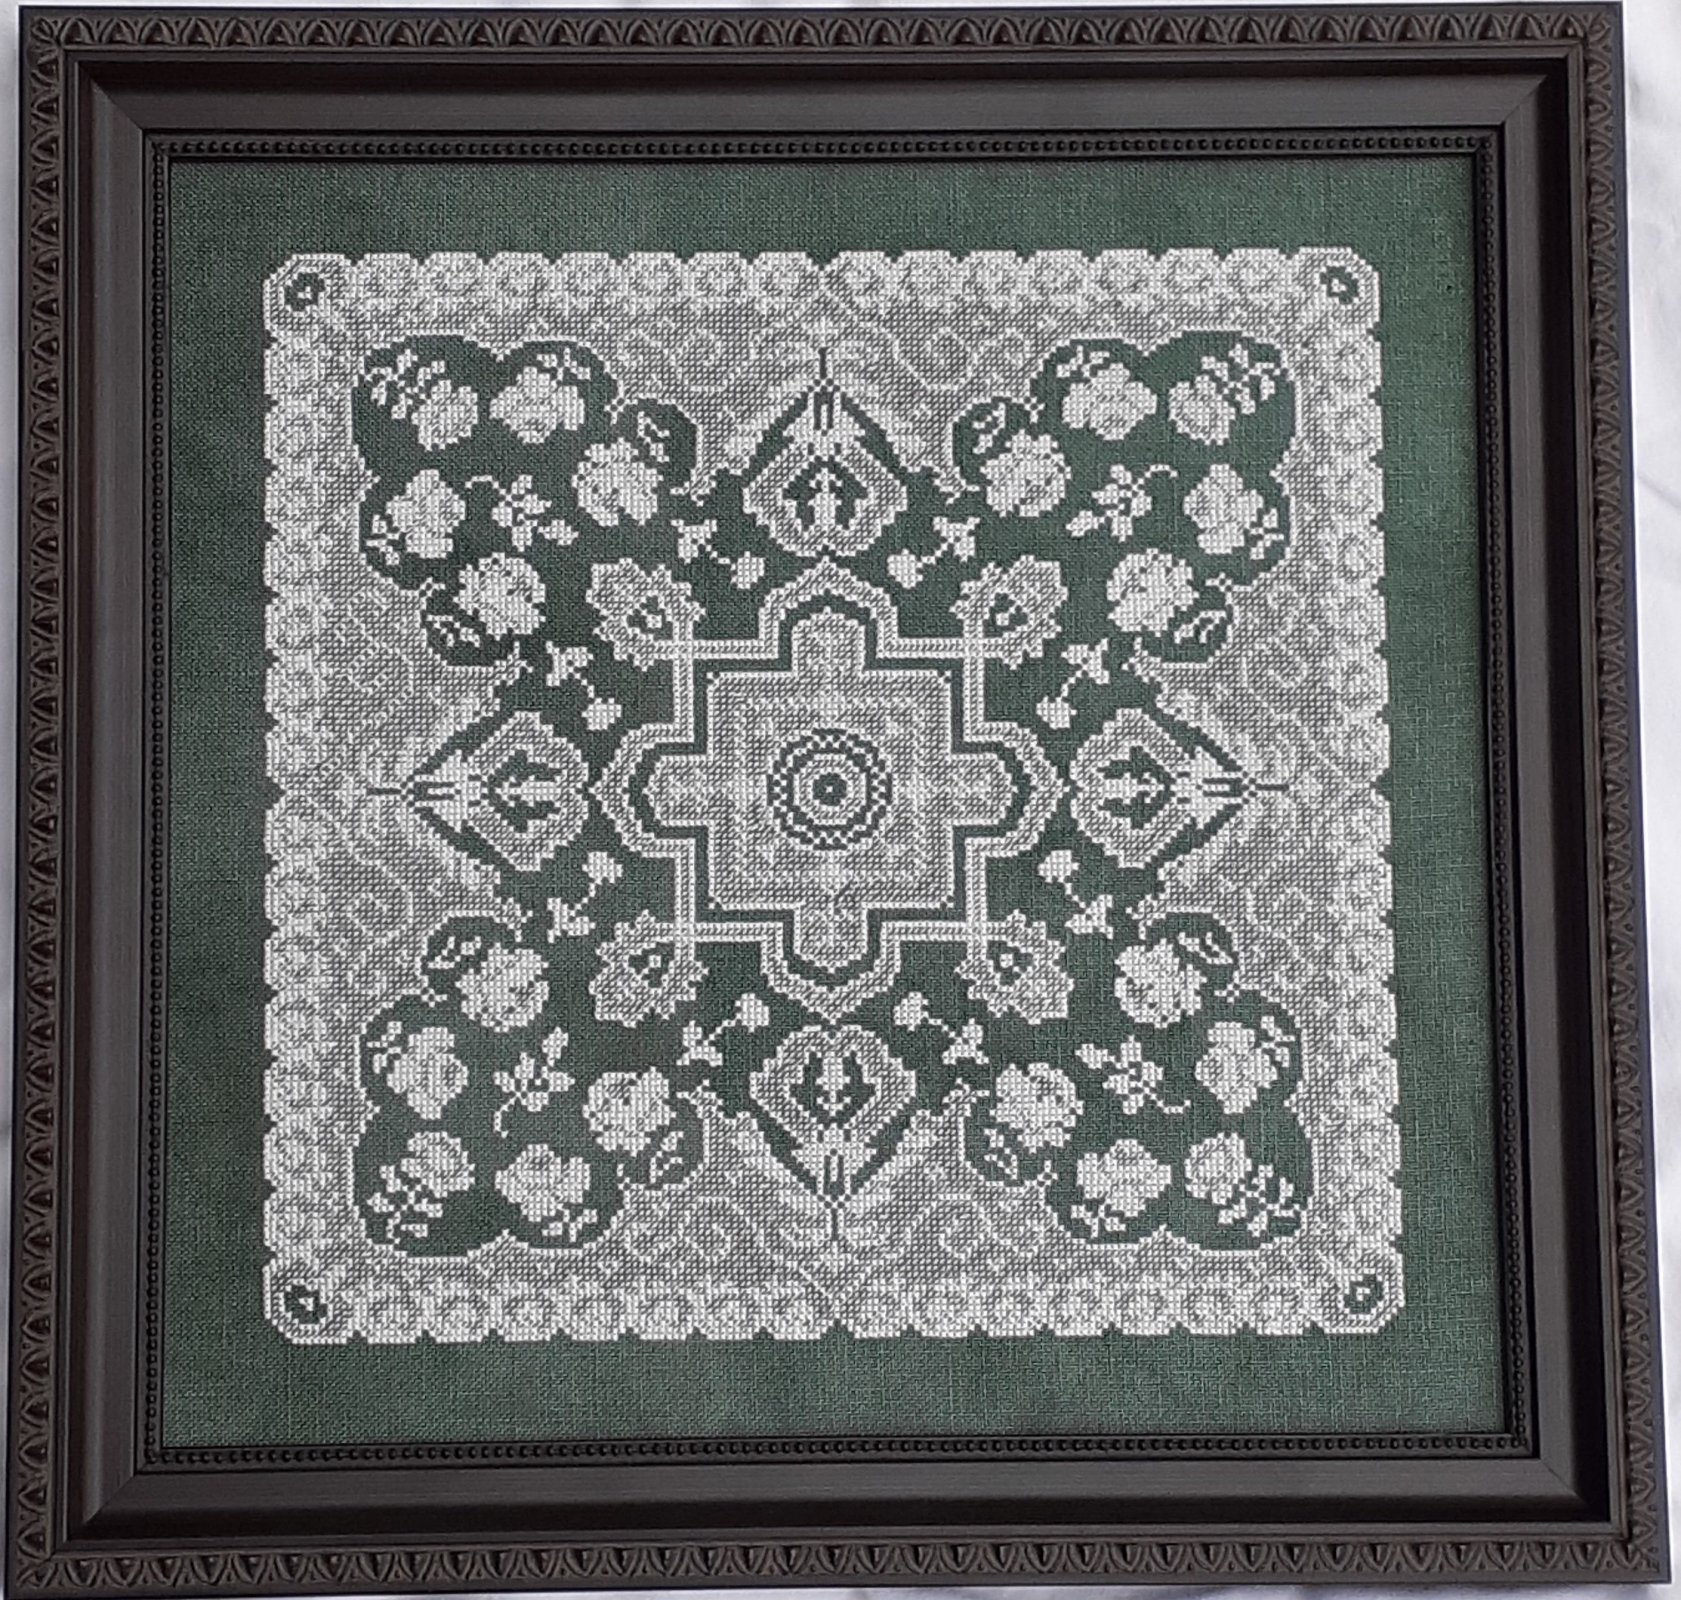 Elegant Lace chart - Works by ABC